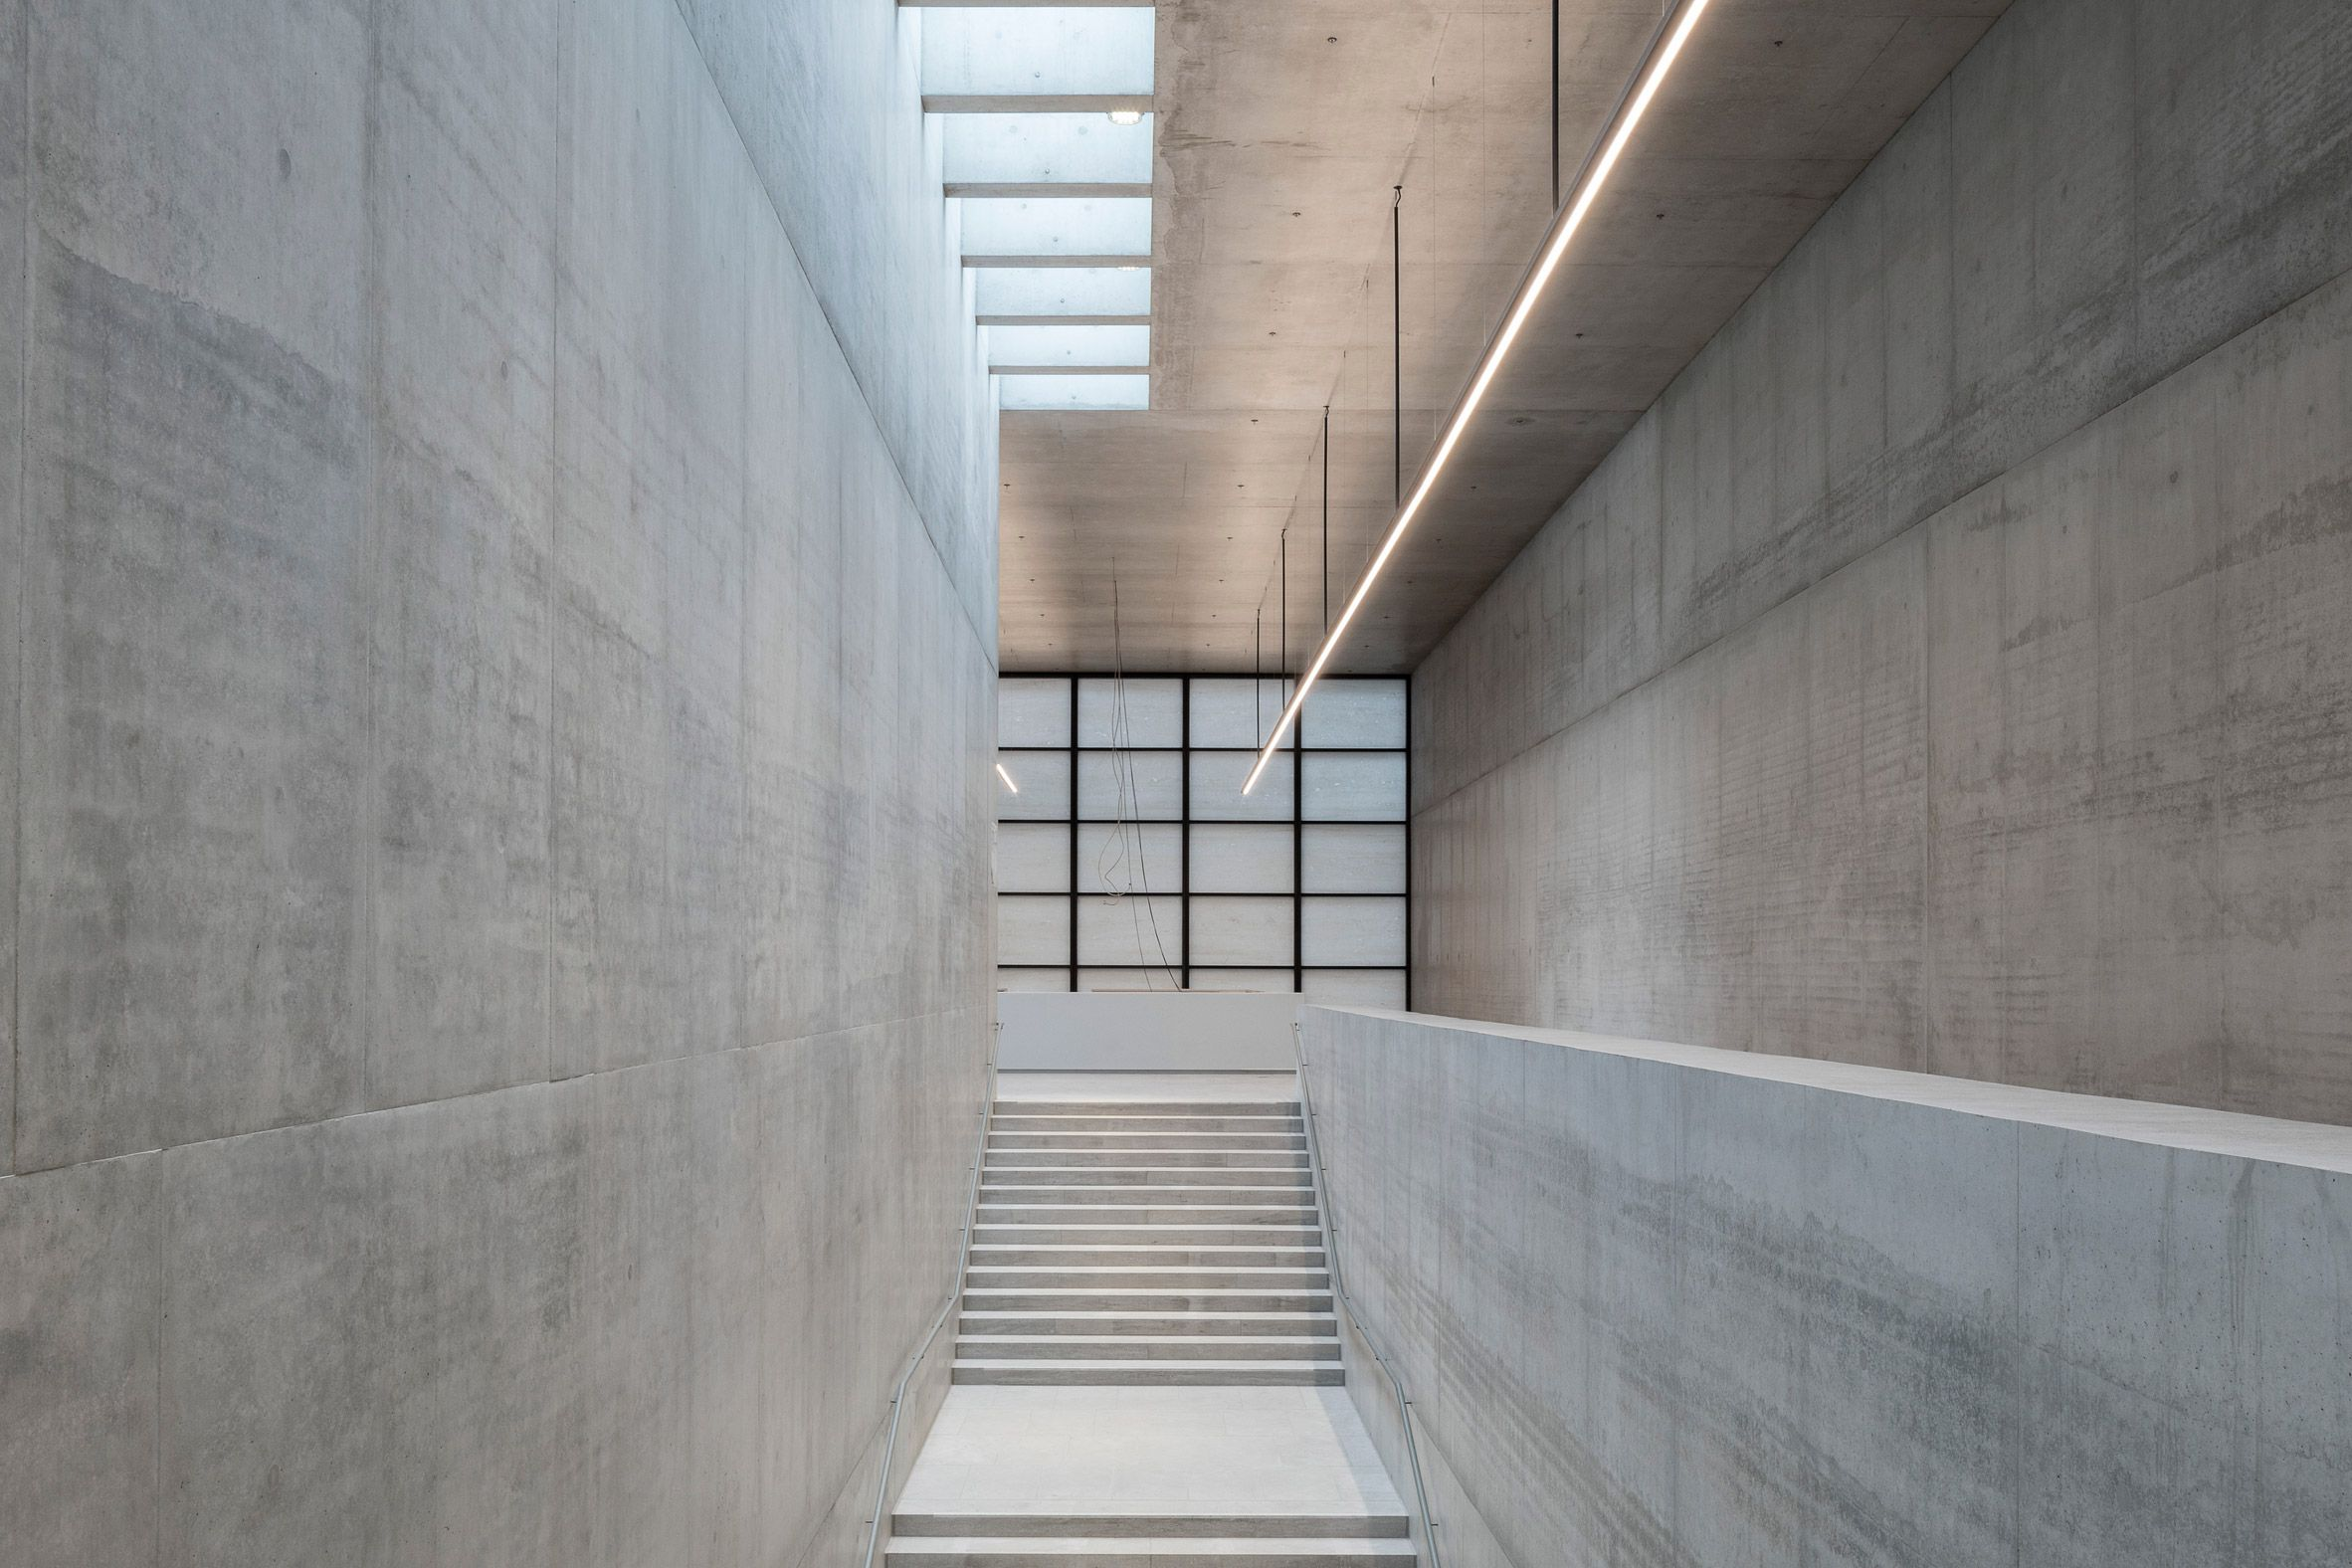 Interior Of James Simon Galerie In Berlin By David Chipperfield Architects David Chipperfield Architects David Chipperfield Architecture Museum Island